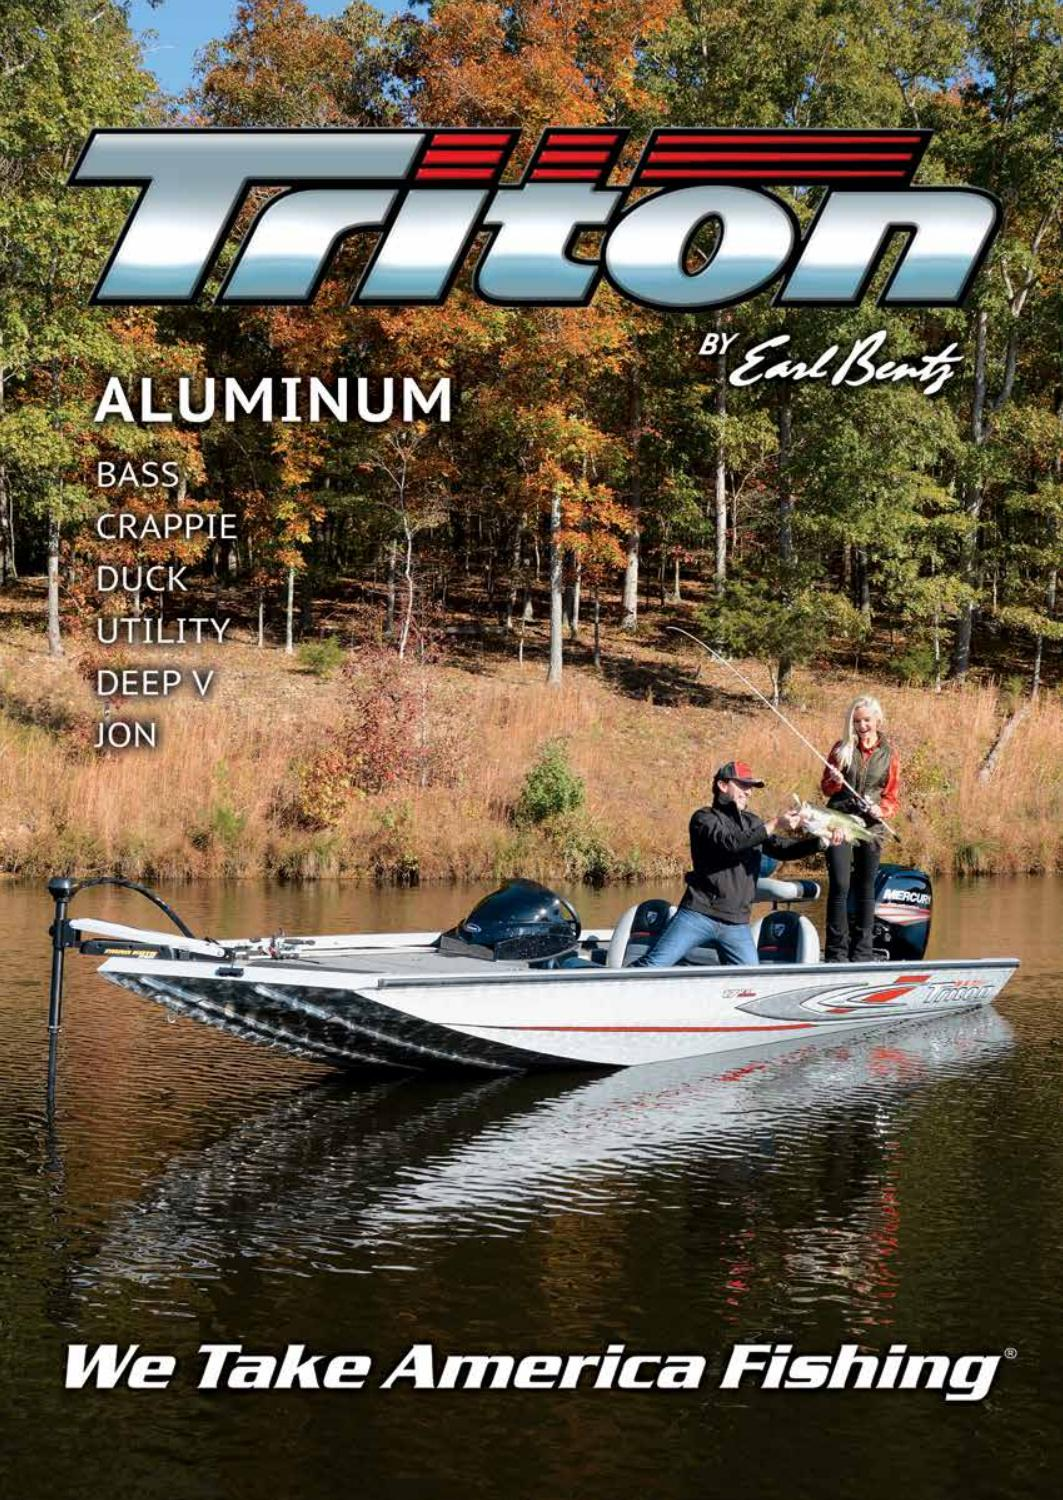 Triton Boats 2017 Aluminum Catalog by Triton Boats - issuu